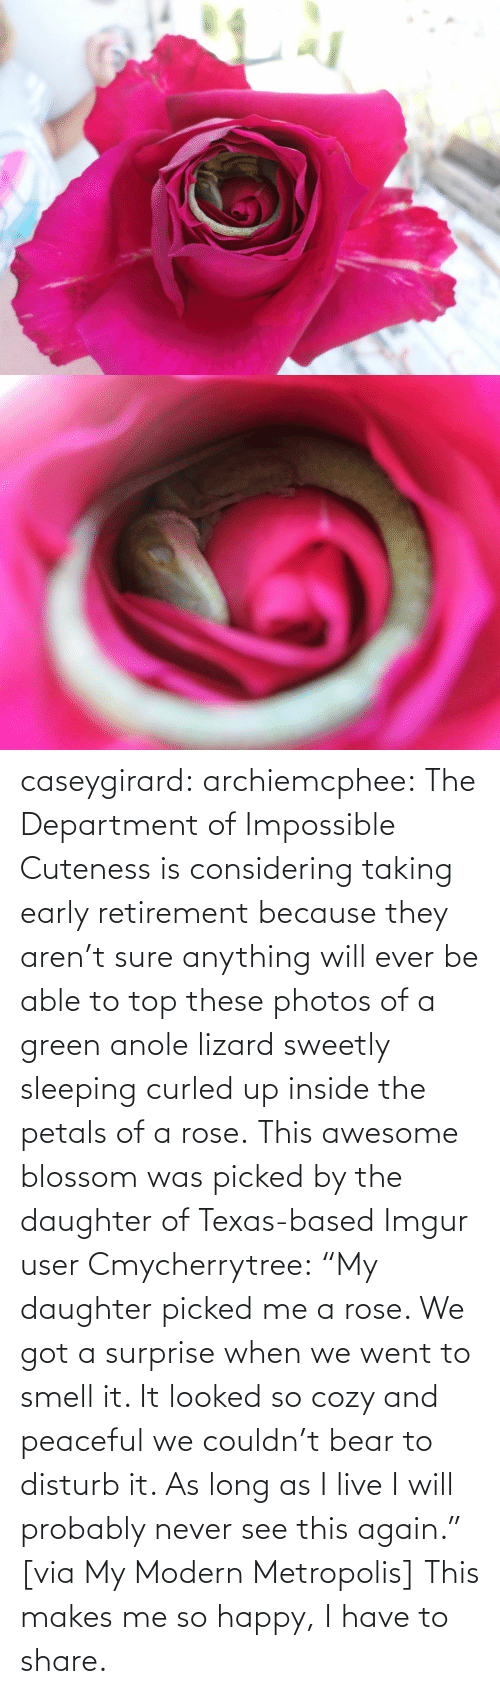 "share: caseygirard:  archiemcphee:   The Department of Impossible Cuteness is considering taking early retirement because they aren't sure anything will ever be able to top these photos of a green anole lizard sweetly sleeping curled up inside the petals of a rose. This awesome blossom was picked by the daughter of Texas-based Imgur user Cmycherrytree: ""My daughter picked me a rose. We got a surprise when we went to smell it. It looked so cozy and peaceful we couldn't bear to disturb it. As long as I live I will probably never see this again."" [via My Modern Metropolis]   This makes me so happy, I have to share."